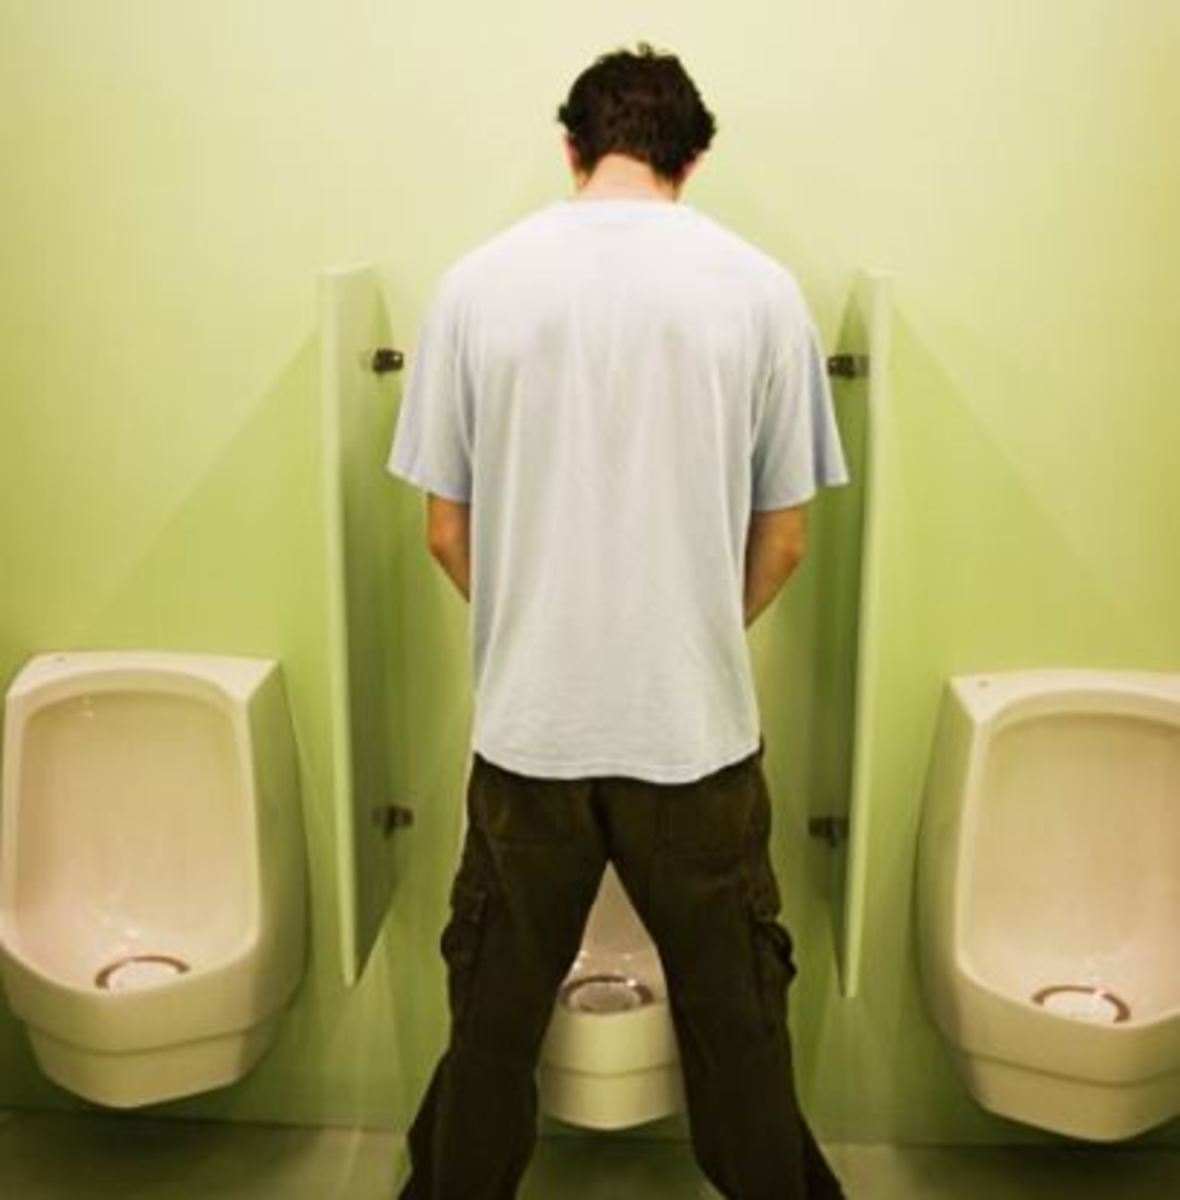 Causes of Split Stream Urination